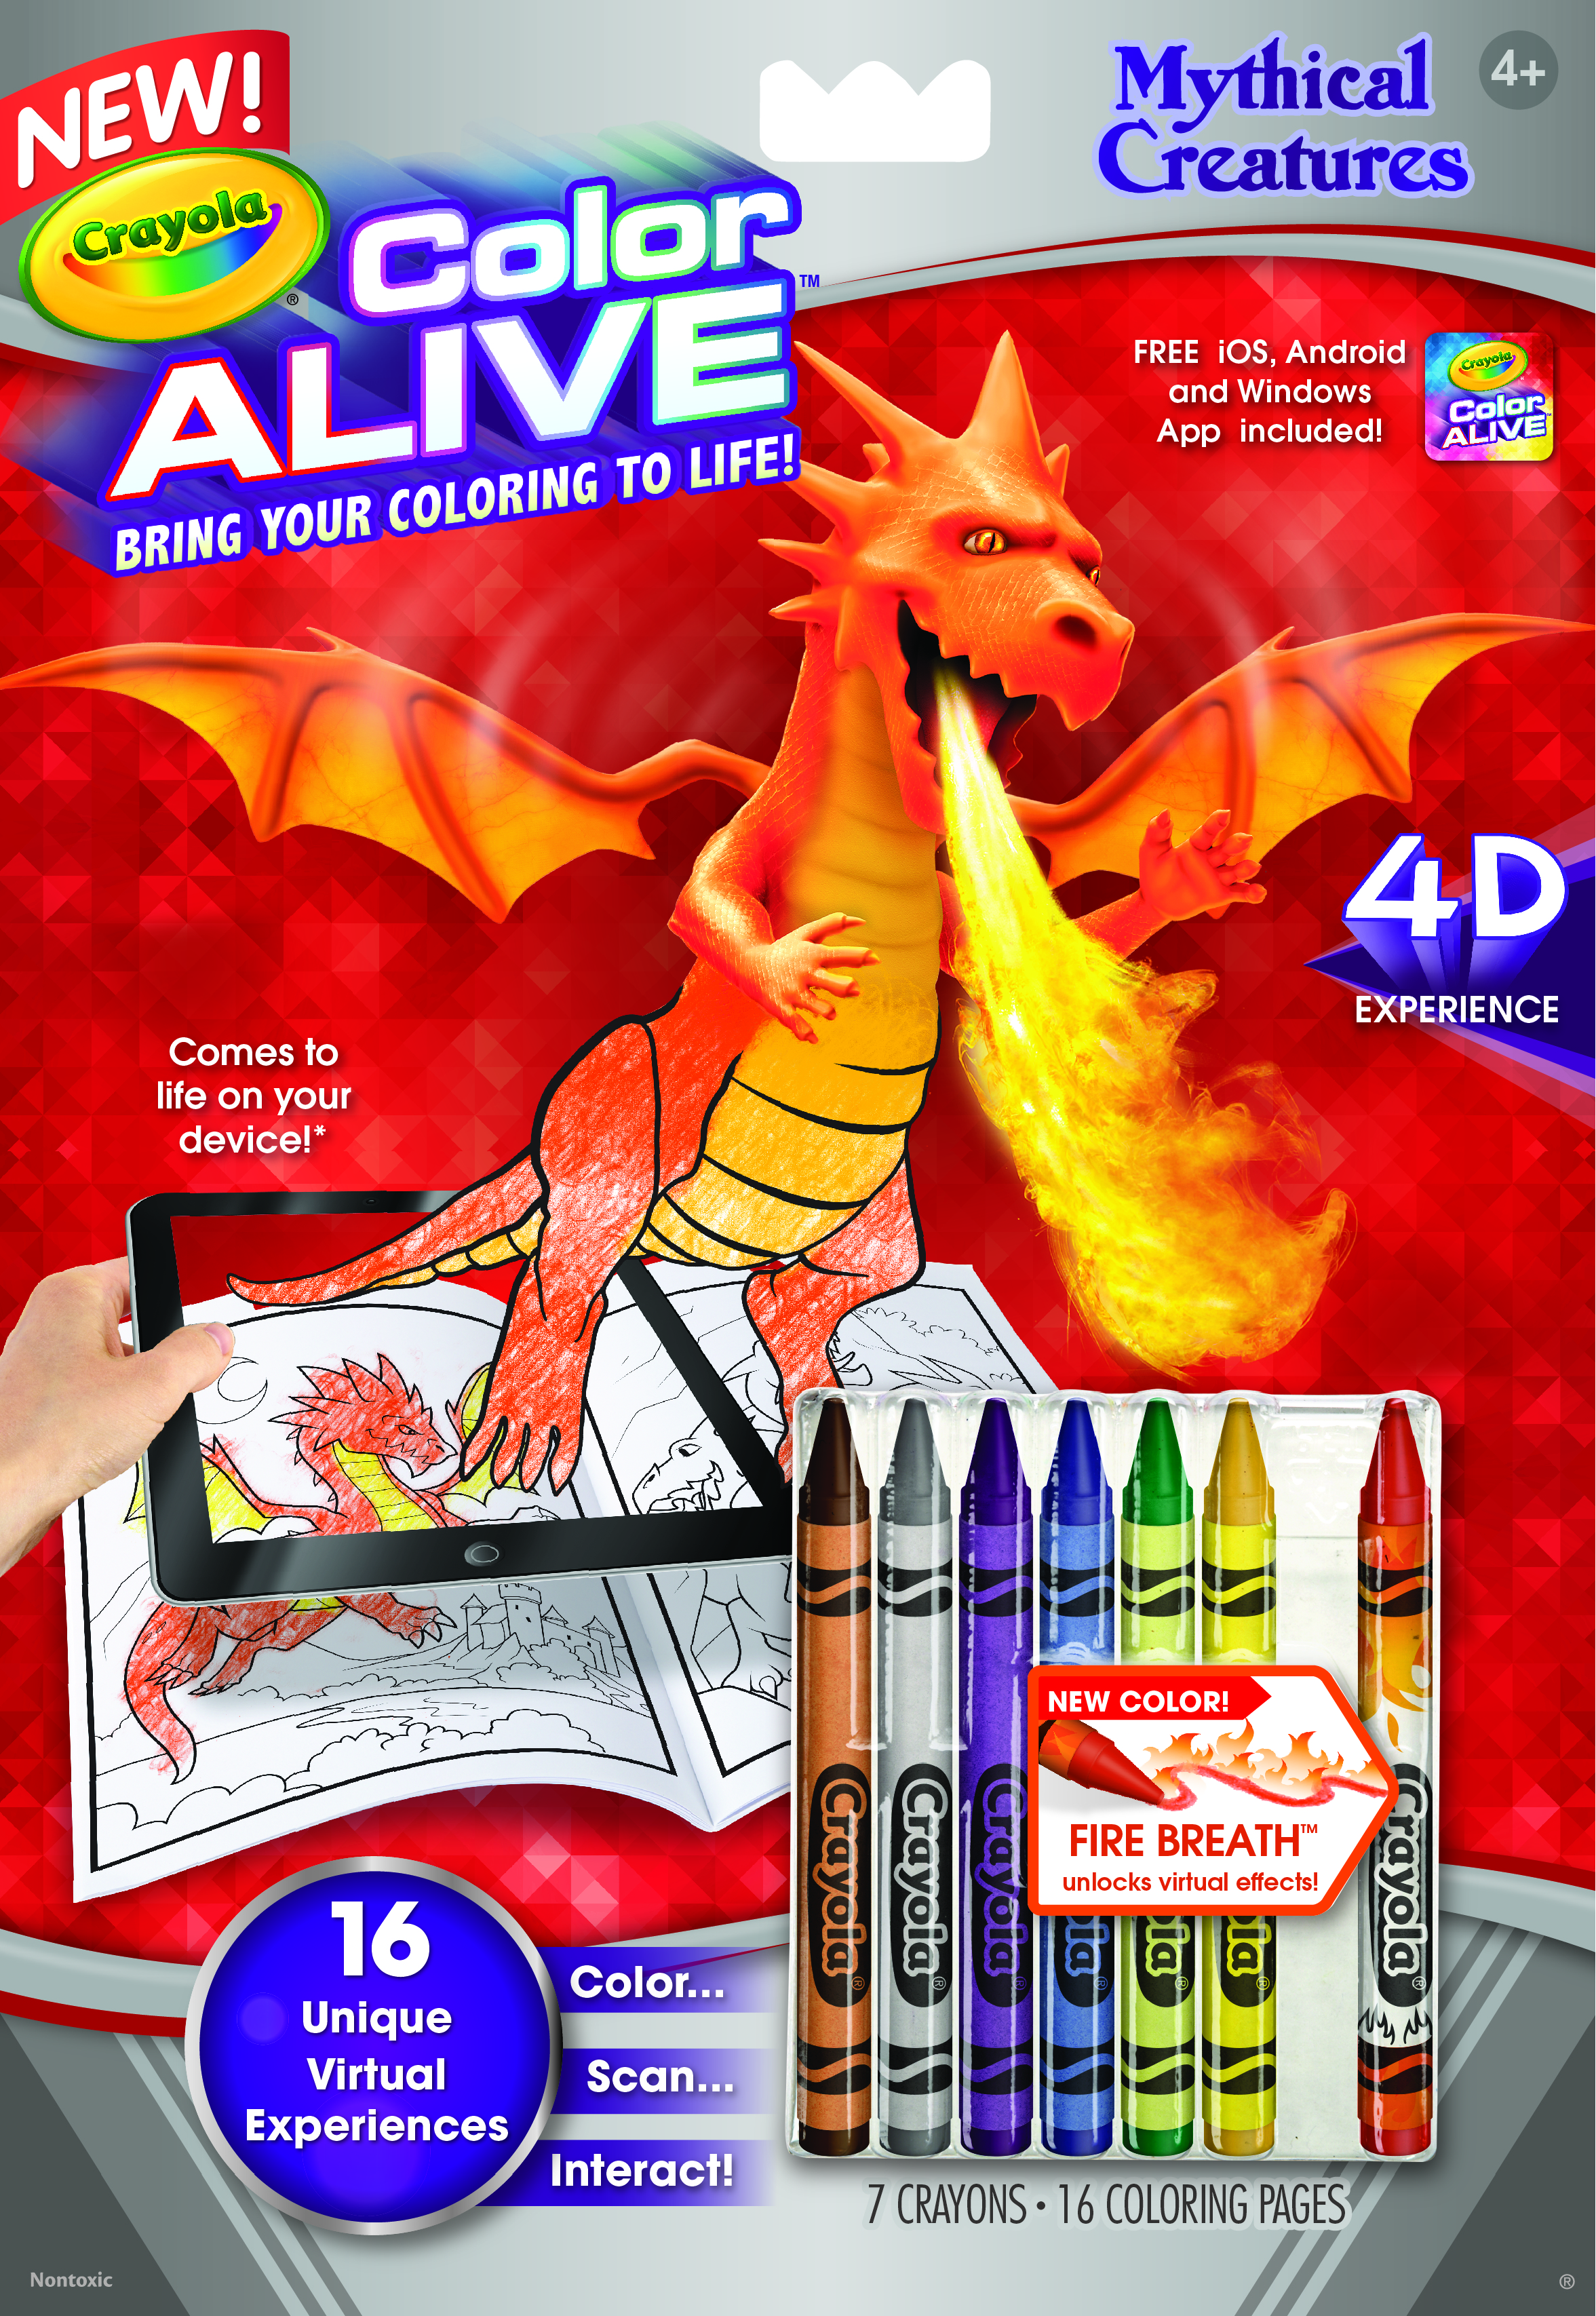 New Products from Crayola Bring